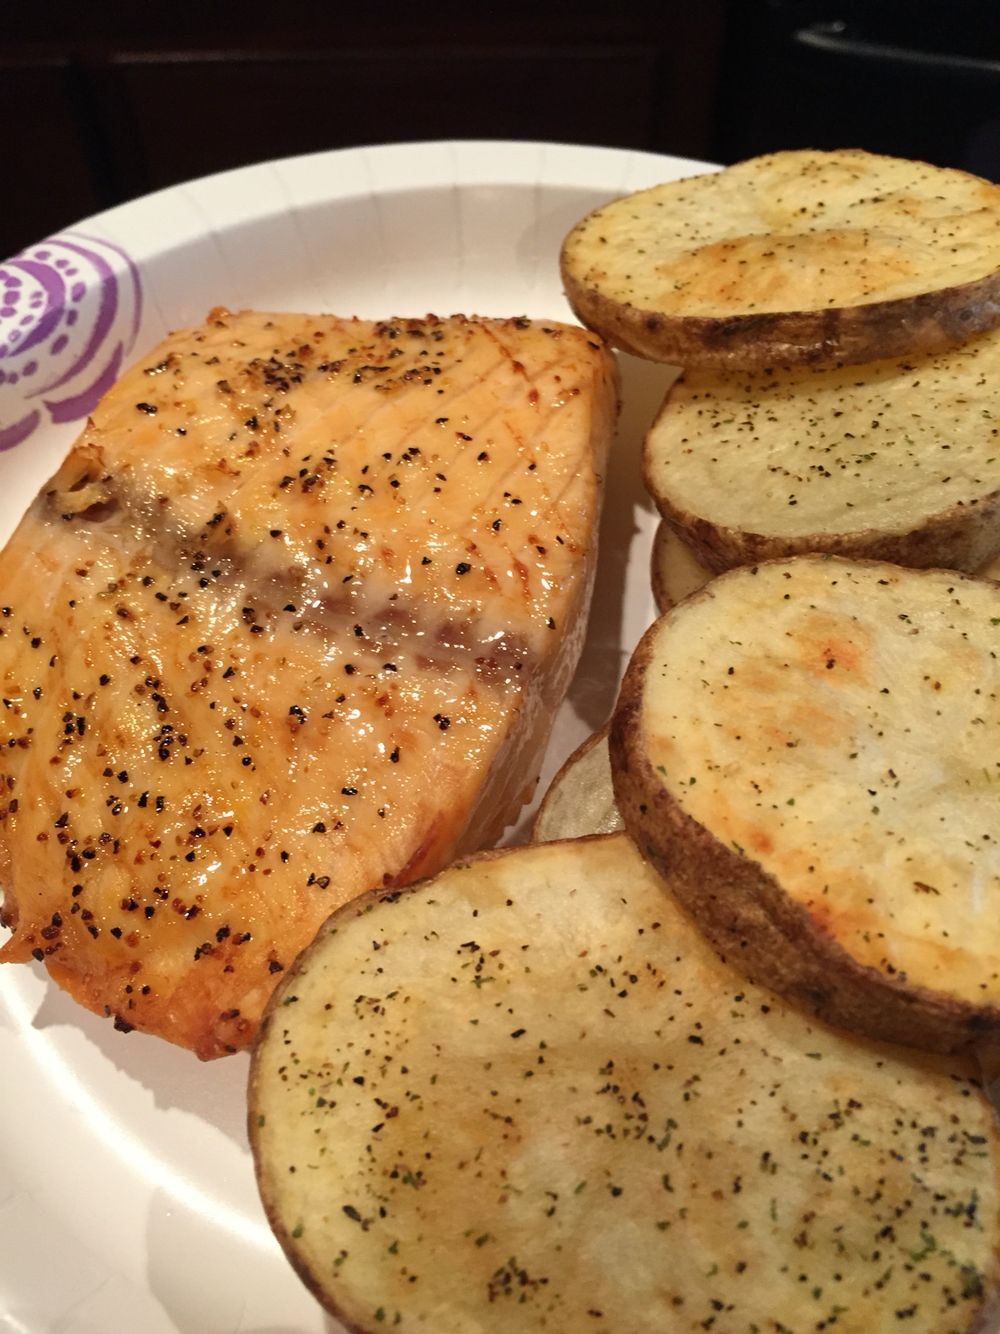 Nuwave Oven: Salmon Seasoned With Lemon Pepper And Salt And Potatoes Cooked  For 12 Mins